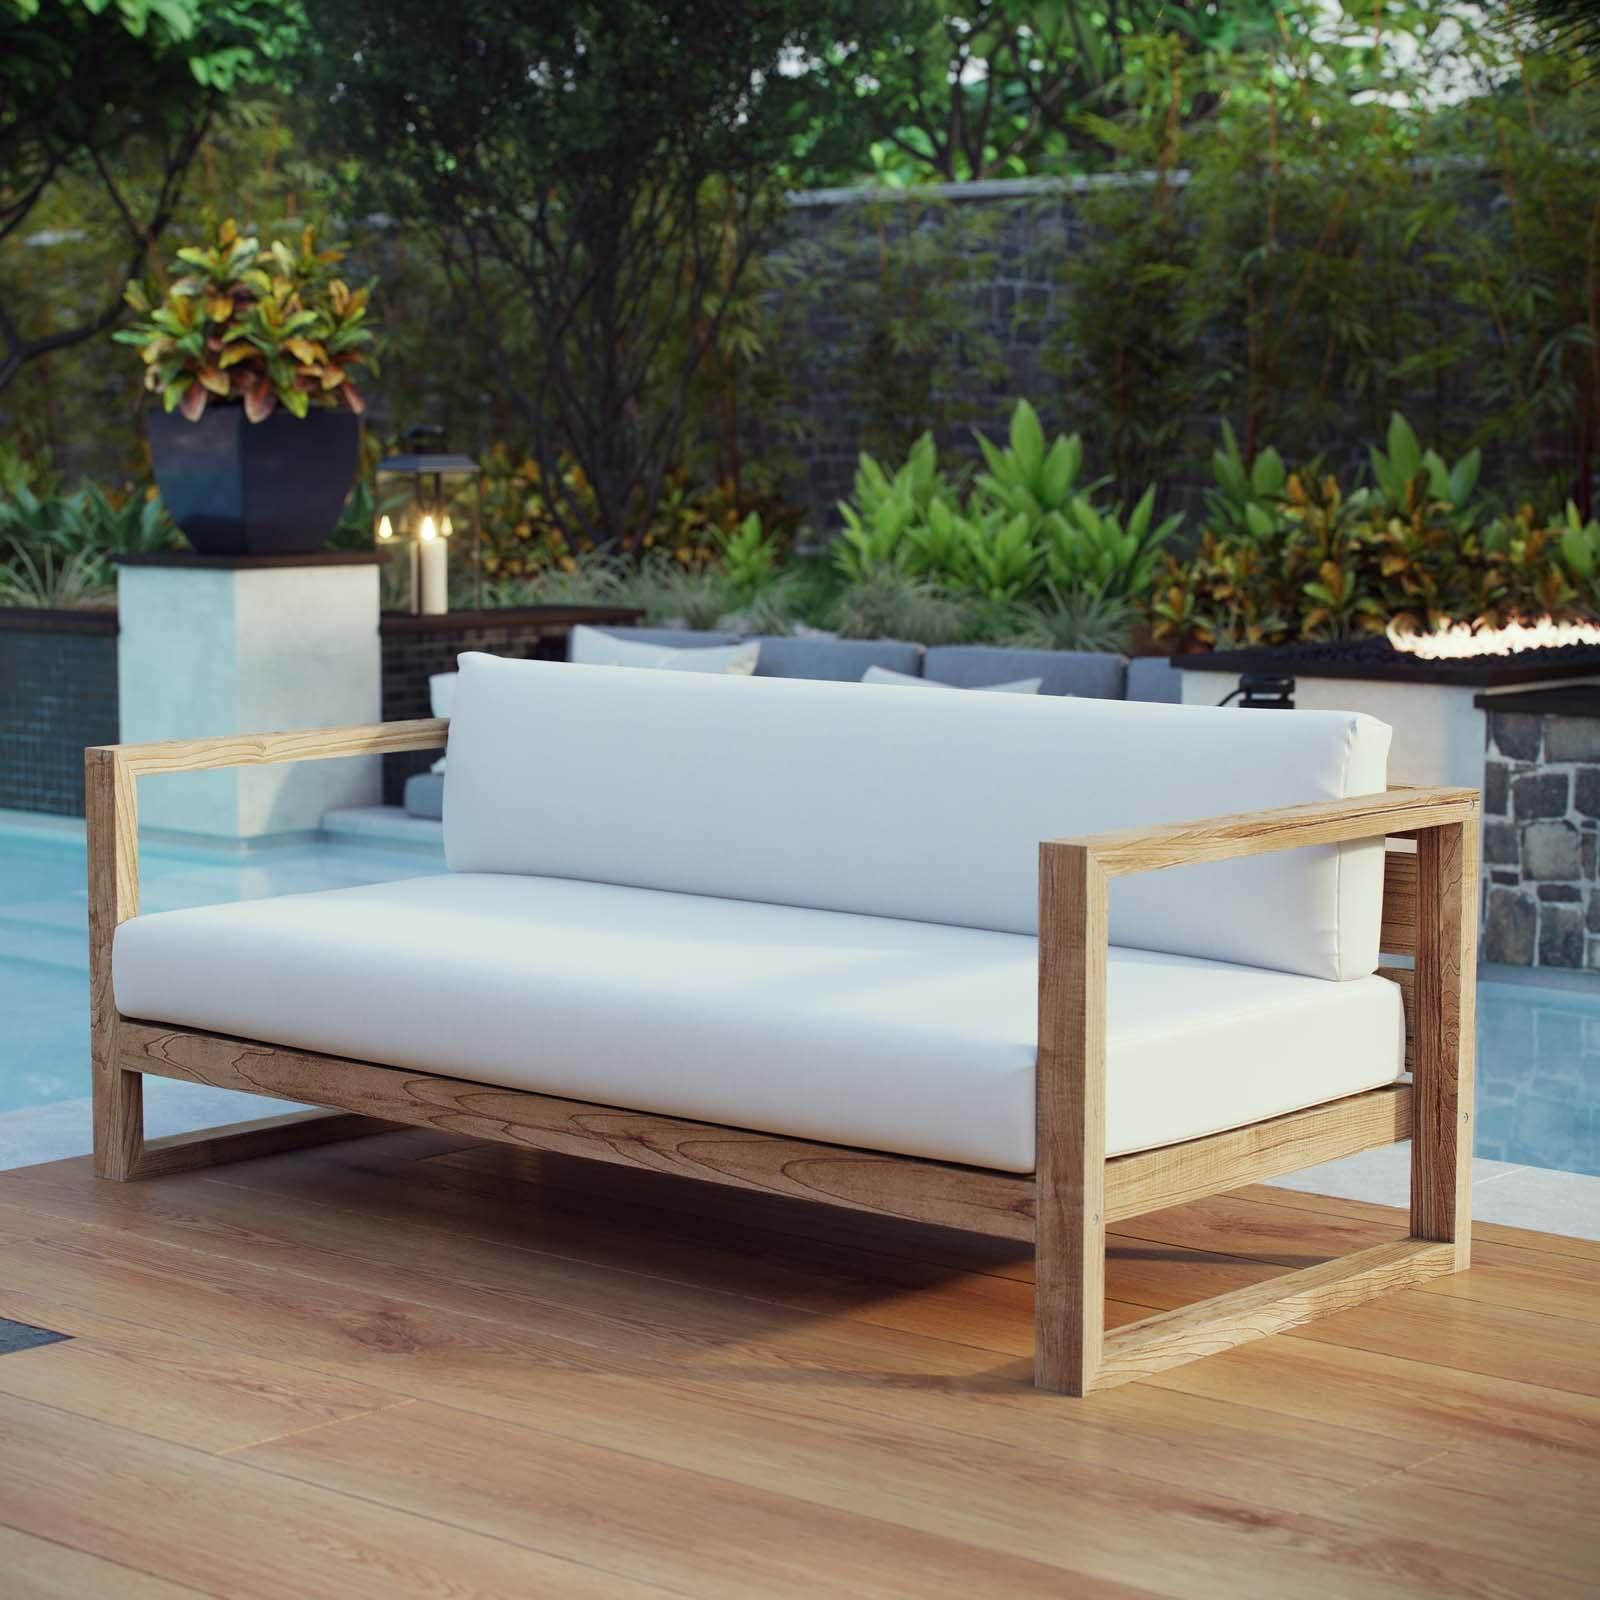 Upland Outdoor Teak Sofa by Modway | Wedding Planning ...